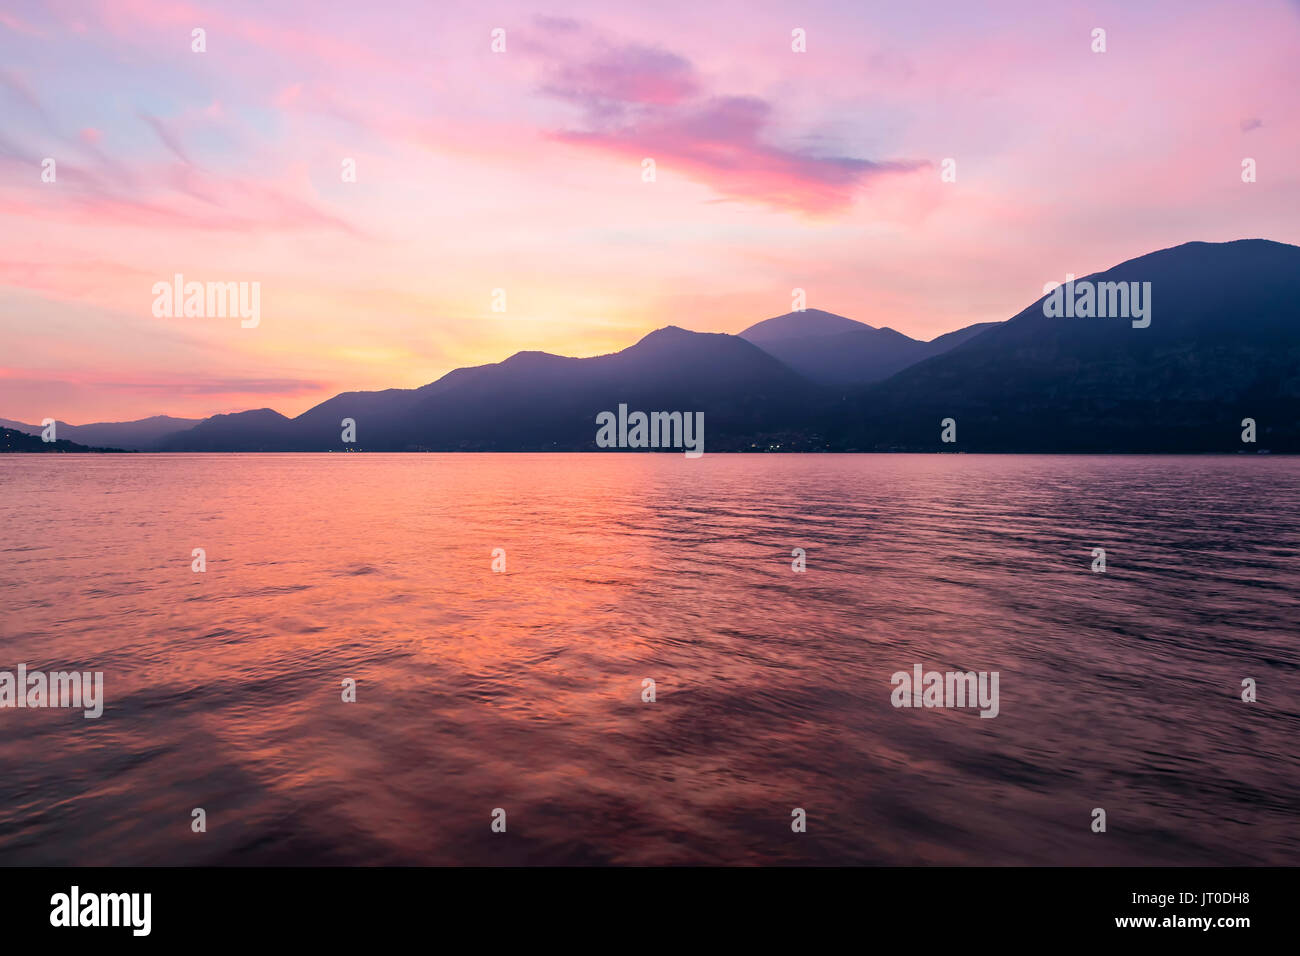 Picturesque foggy sunset at Iseo lake, Lombardy, Italy - Stock Image